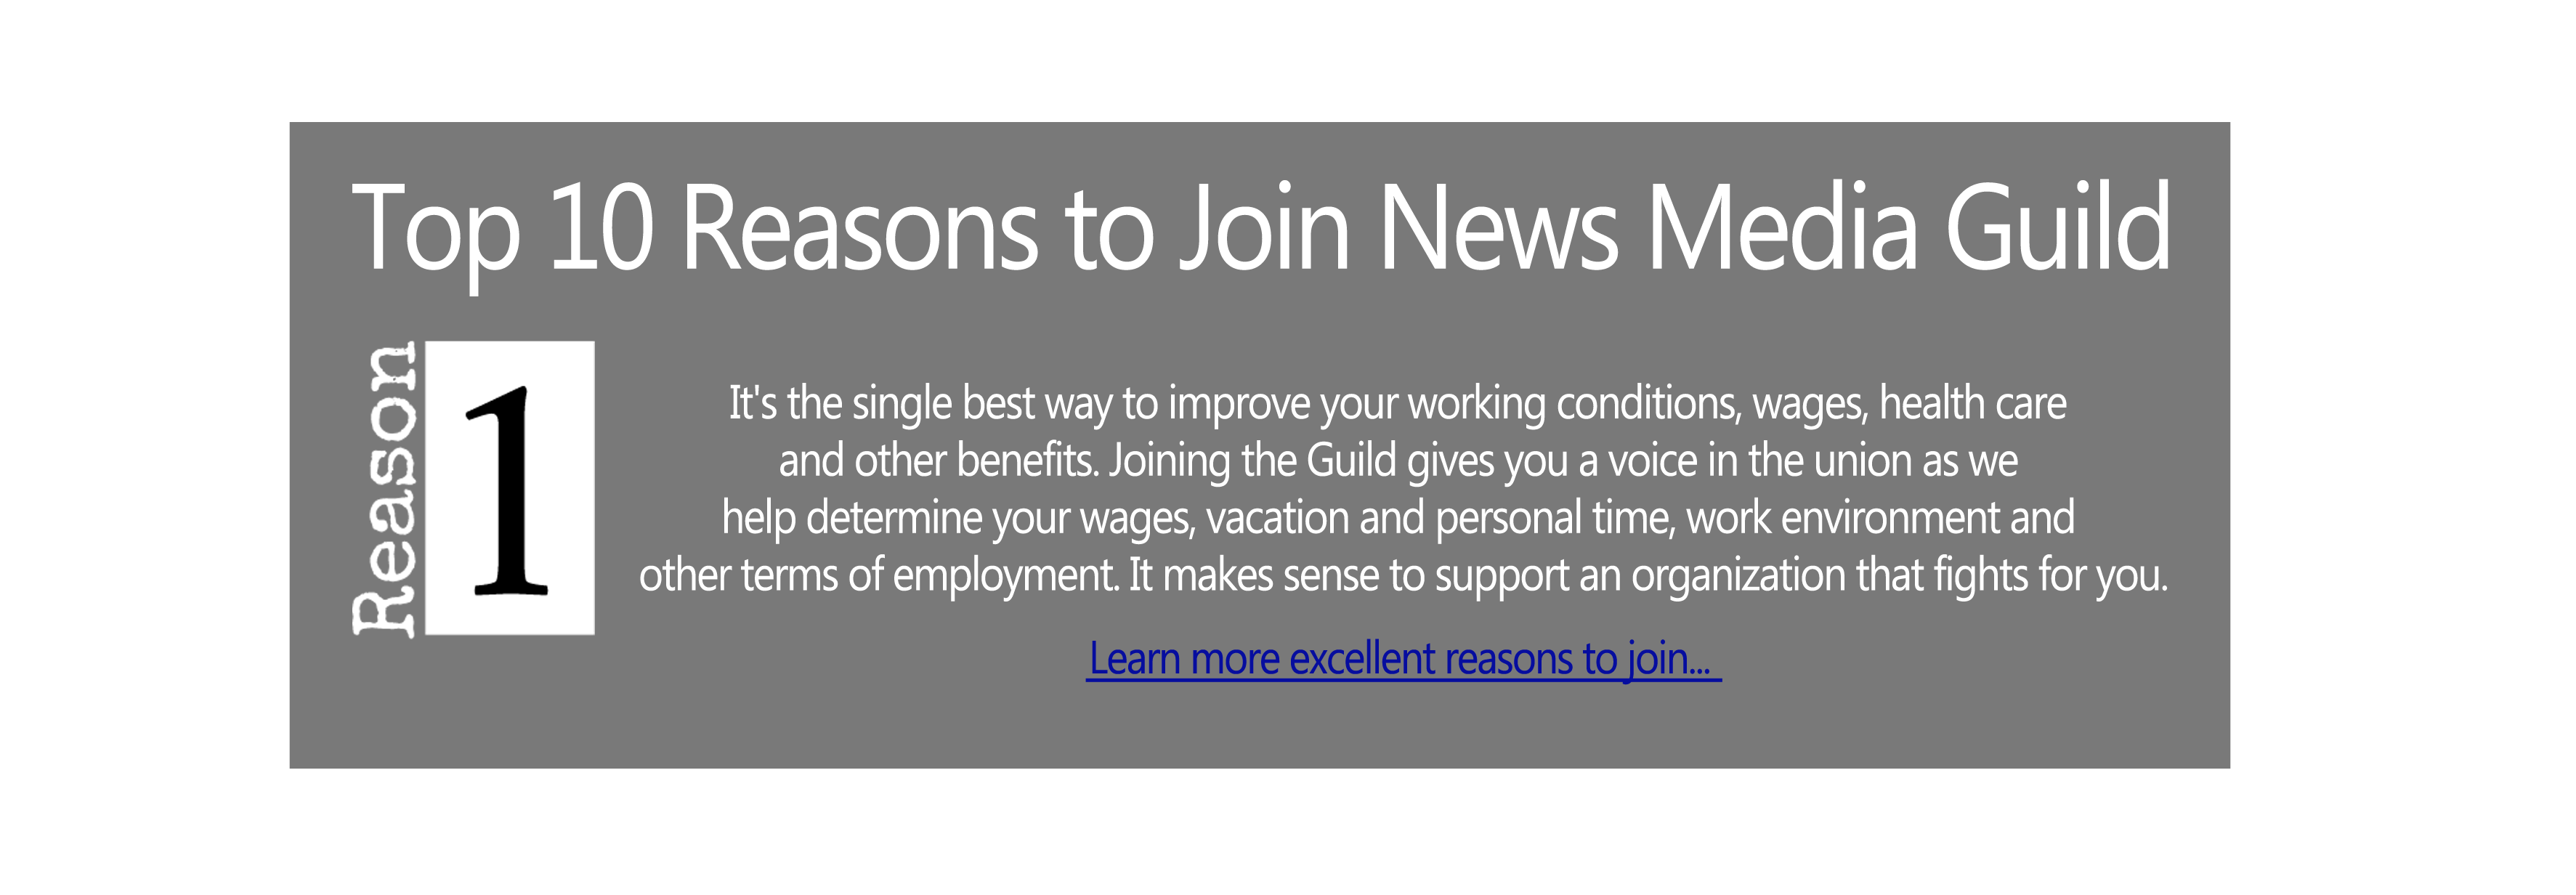 Top 10 Reasons to Join news Media Guild